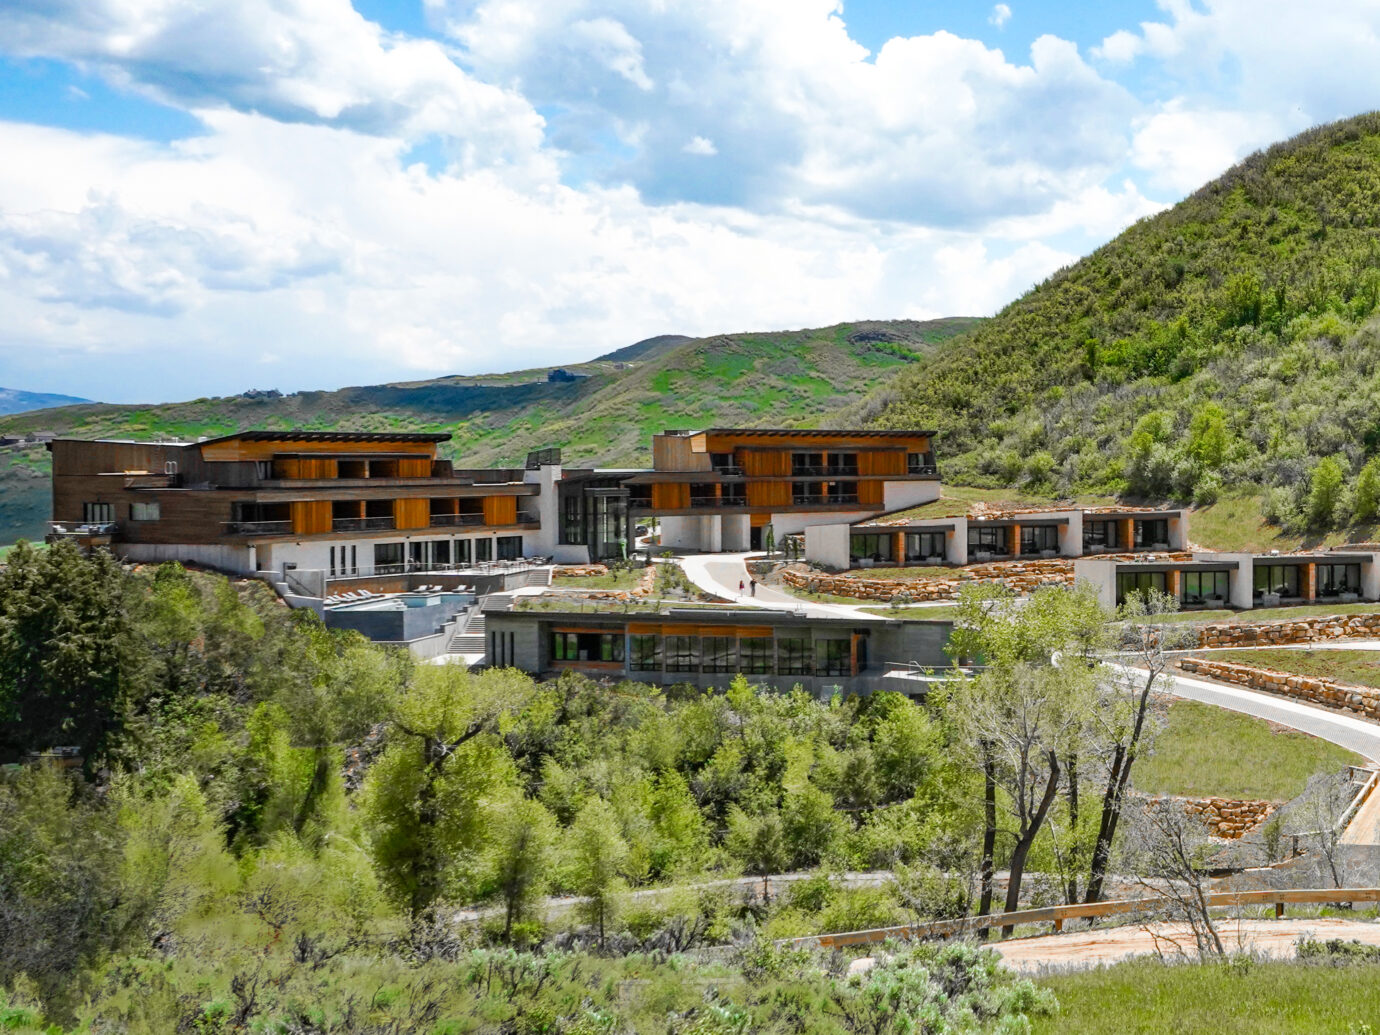 Exterior of Lodge at Blue Sky, Utah